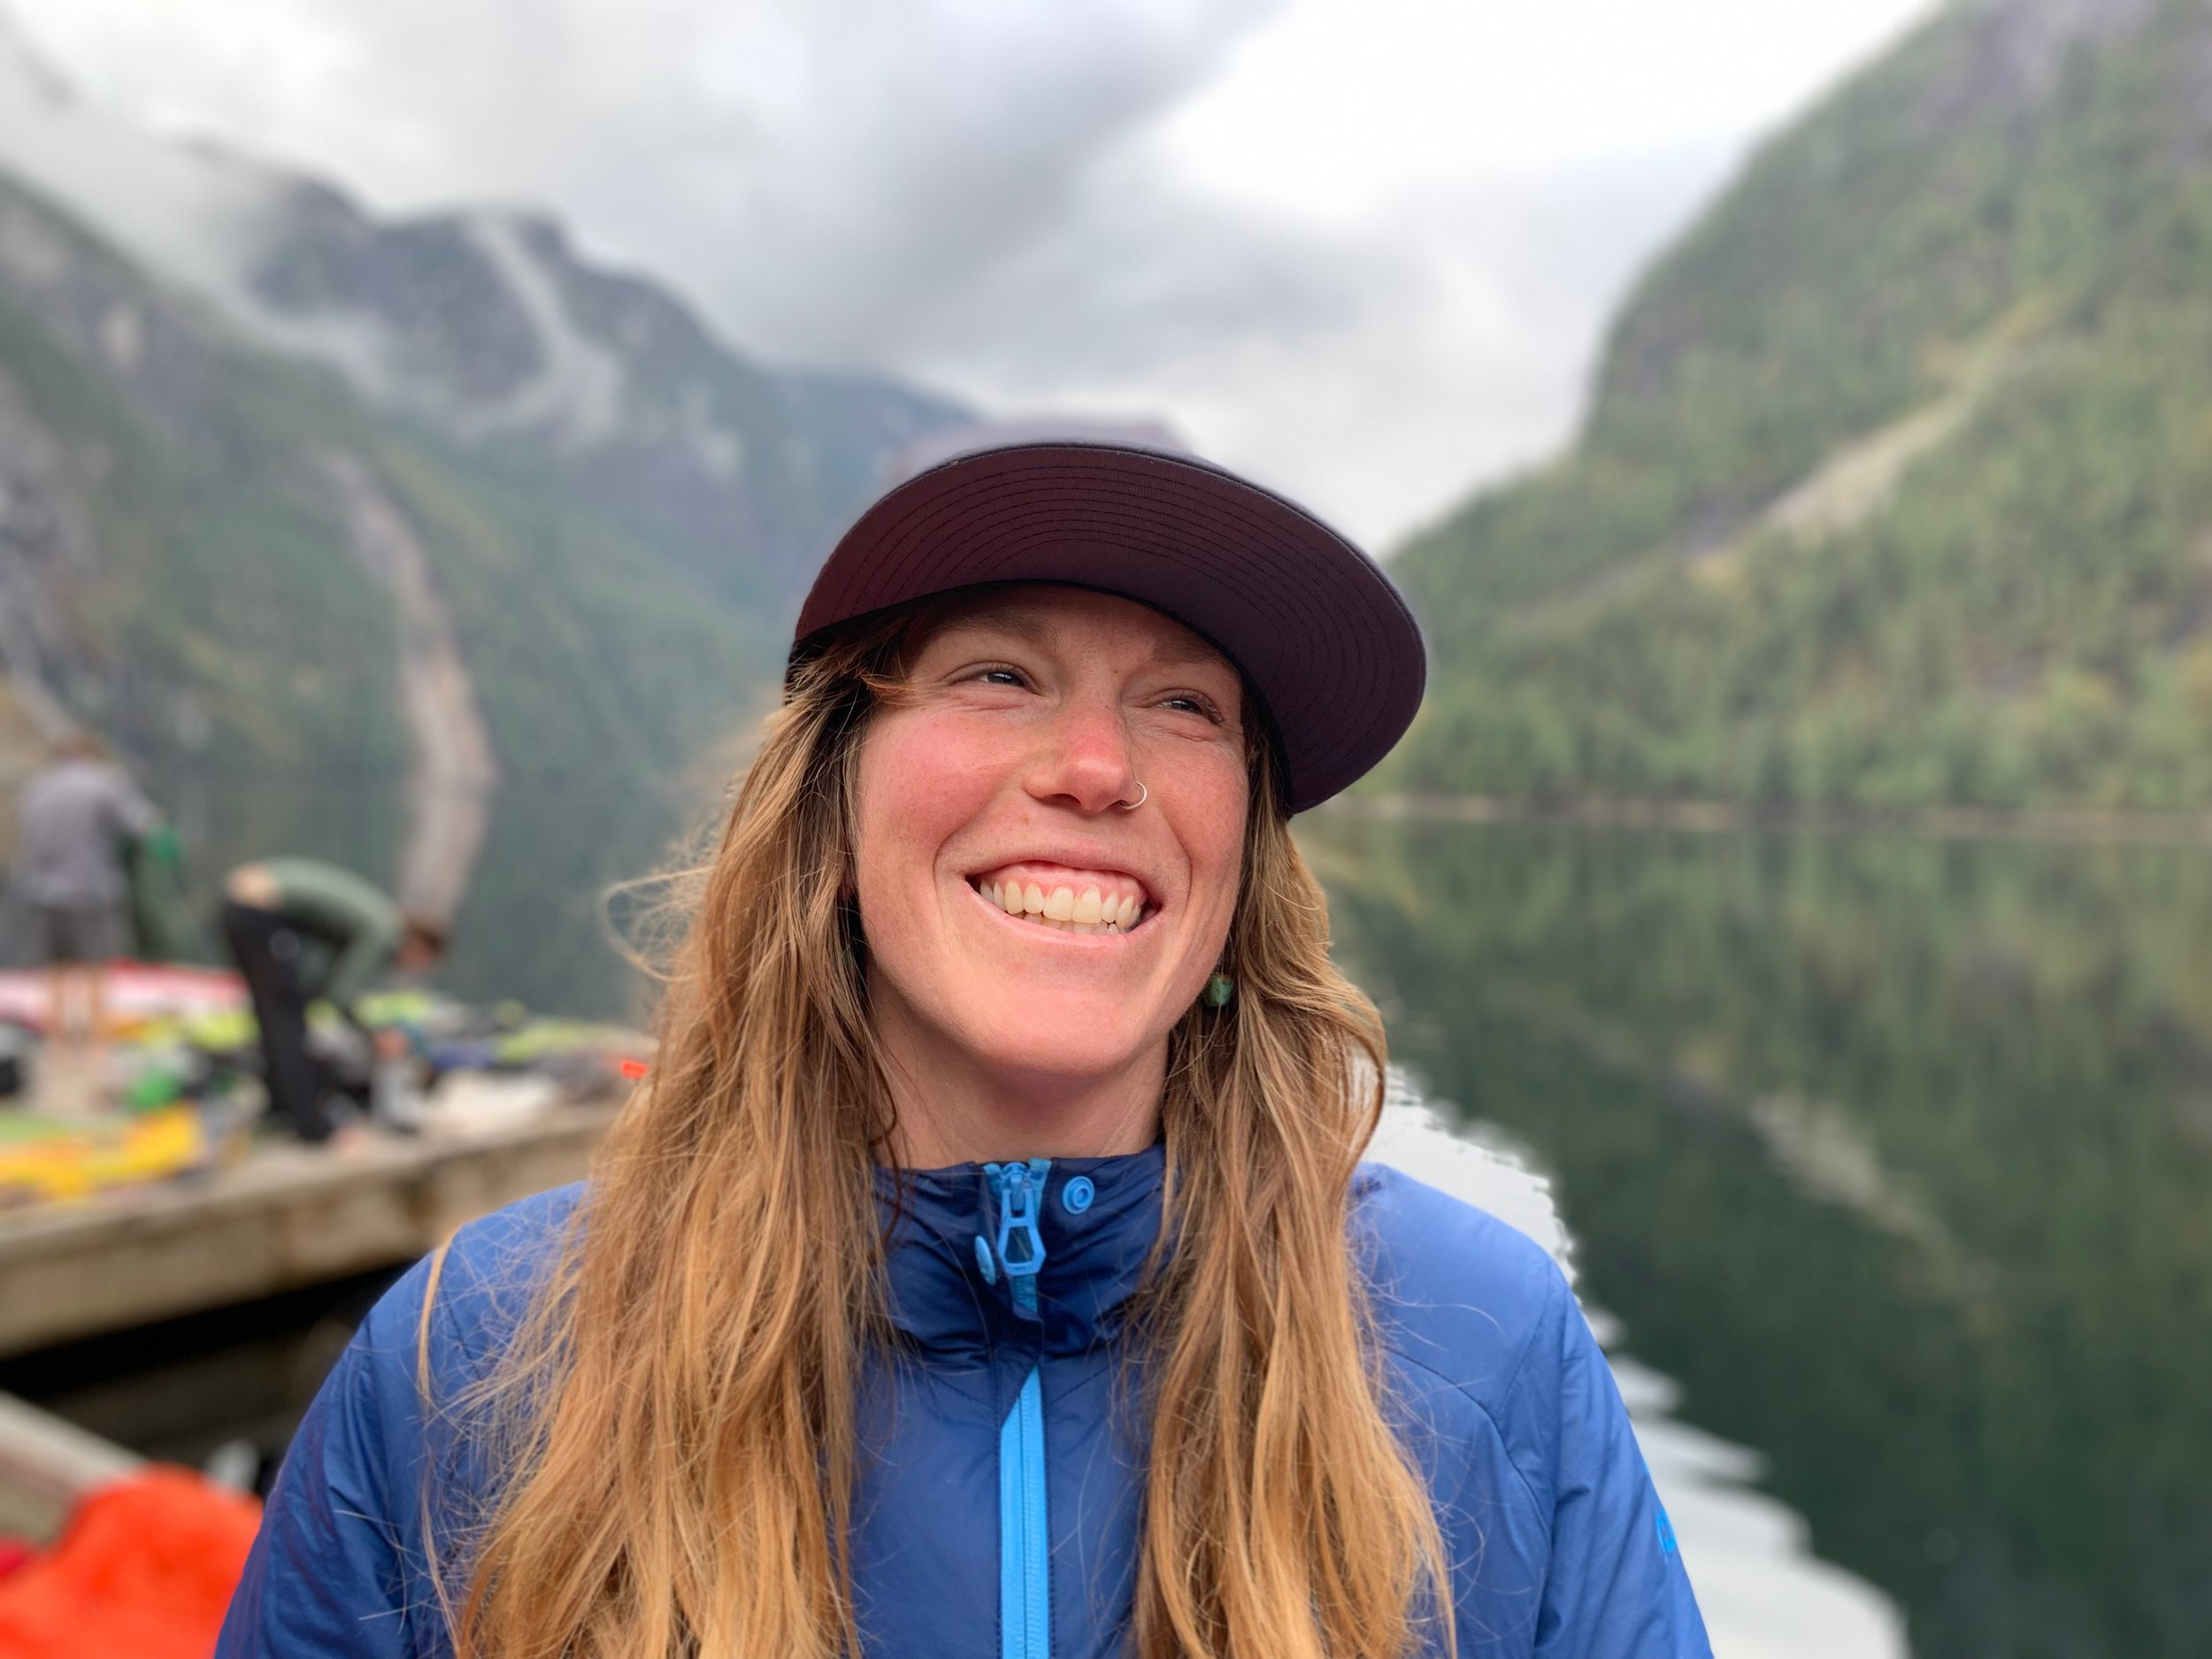 LEAD GUIDE: HANNAH MCGOWEN - Hannah is an avid skier, climber, sea kayaker, and all around outdoor enthusiast. She is perpetually seeking ways to interact with the natural world that are creative and engaging, which has led her to work outside as an instructor and guide for over ten years. In that time Hannah has traveled to several continents to climb mountains and rocks, and has particularly come to enjoy guiding people in big mountains. When she's not guiding, Hannah works as a ski patroller and makes her home in Taos, New Mexico, where there are seemingly enough steep slopes and canyon walls to keep her occupied for a long time.SIGNIFICANT ASCENTS:Denali – 3 summitsAconcaguaRainier – 30+ summits via 3 routesBaker via 2 routesMount Hood, ski descentMount Shuksan via 2 routesSaipal (7031m, Nepal) expeditionSki traverse, Pika Glacier to Denali BasecampTrek to Everest BasecampPersonal expedition to the Ruth Gorge, AK RangePersonal expedition to the Pika Glacier, AK Range10 day solo kayaking trip Valdez to Whittier, Prince William Sound, AKRock climbs in the western US, Canada, Thailand and AustraliaCERTIFICATIONS:Wilderness First ResponderAvalanche Level 2Leave No Trace TrainerAMGA Rock Guide Course